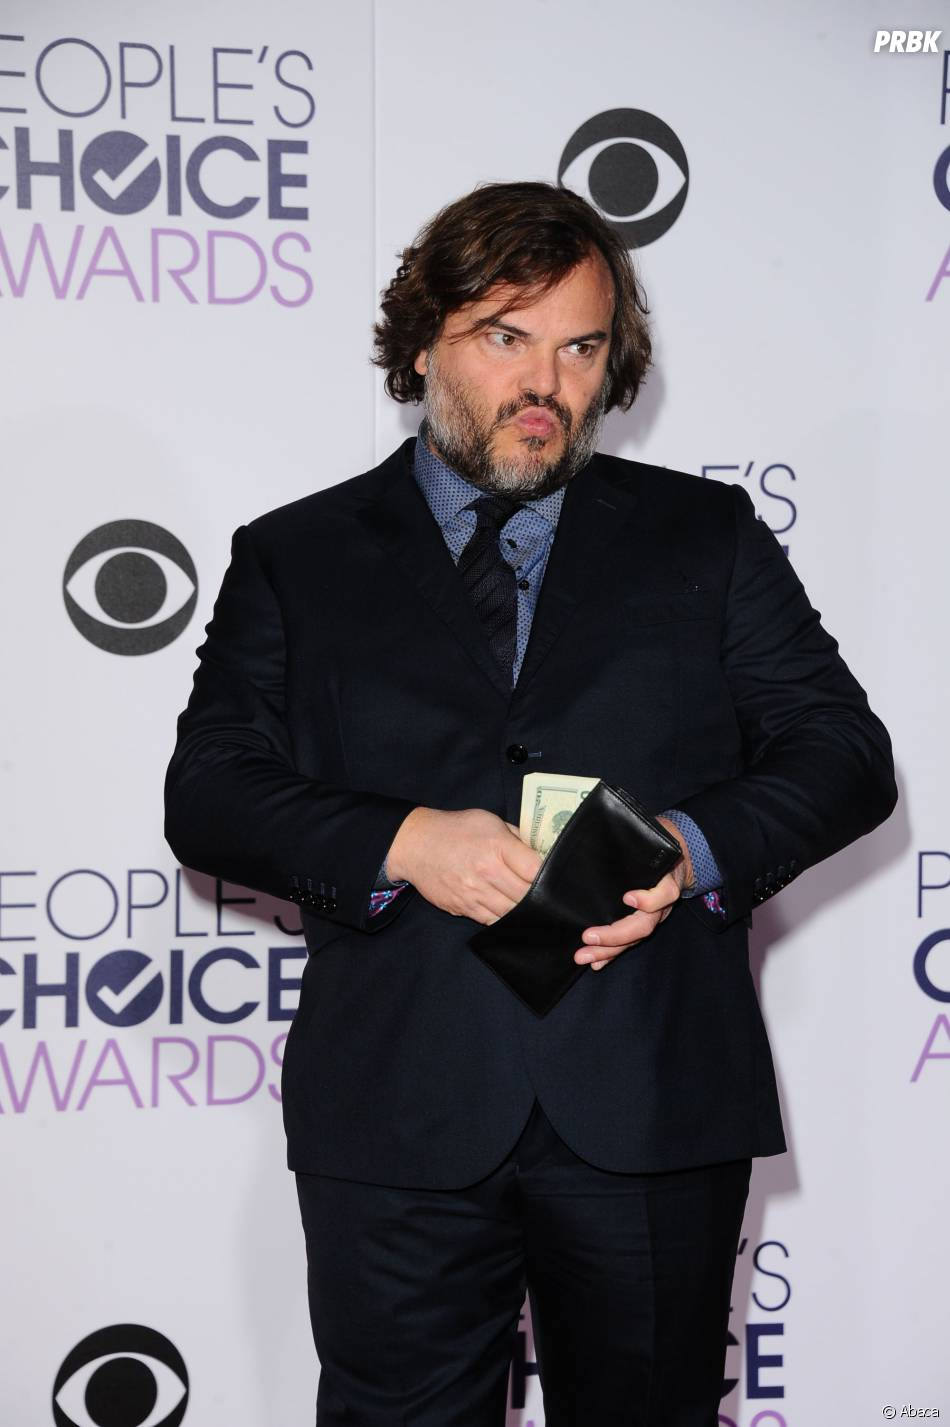 People's Choice Awards 2016 : Jack Black sur le tapis rouge le 6 janvier